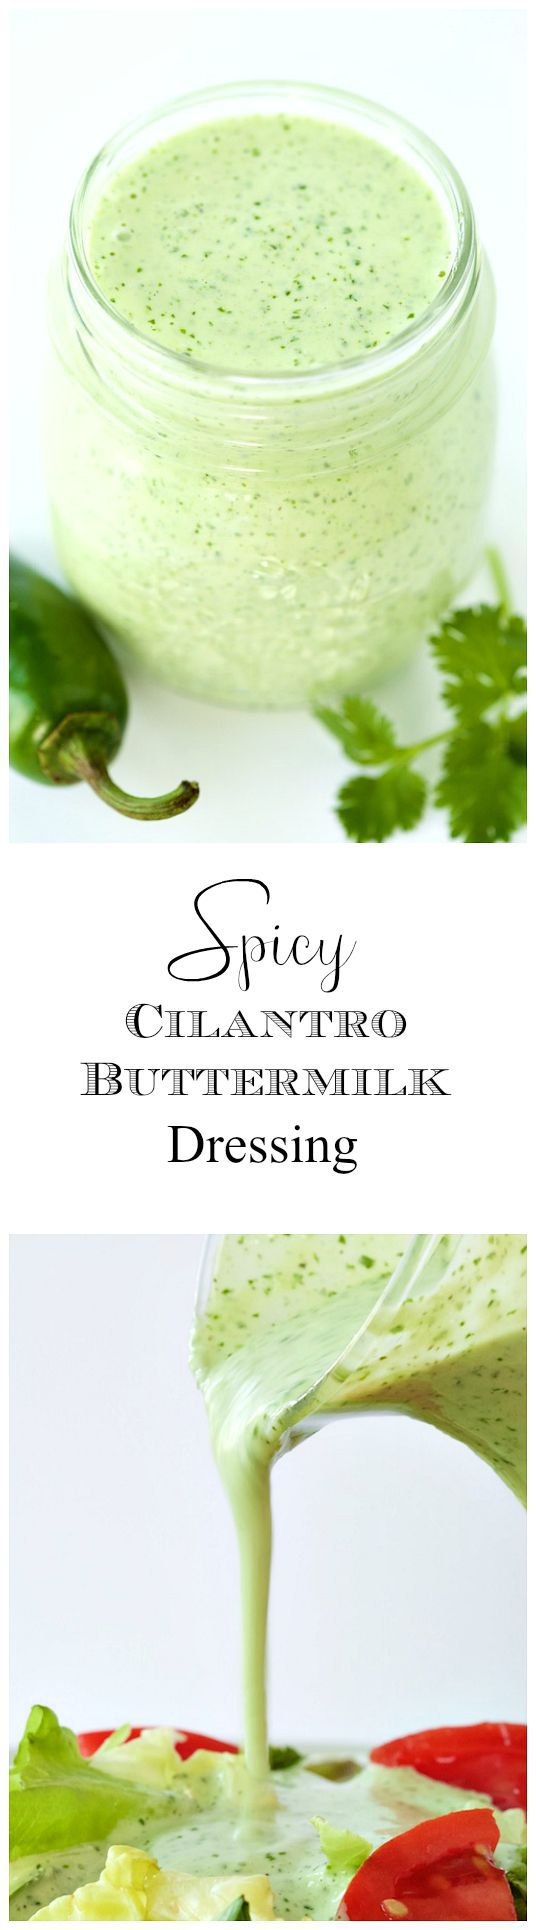 One of those insanely good salad dressings that will make you want to skip the main course!